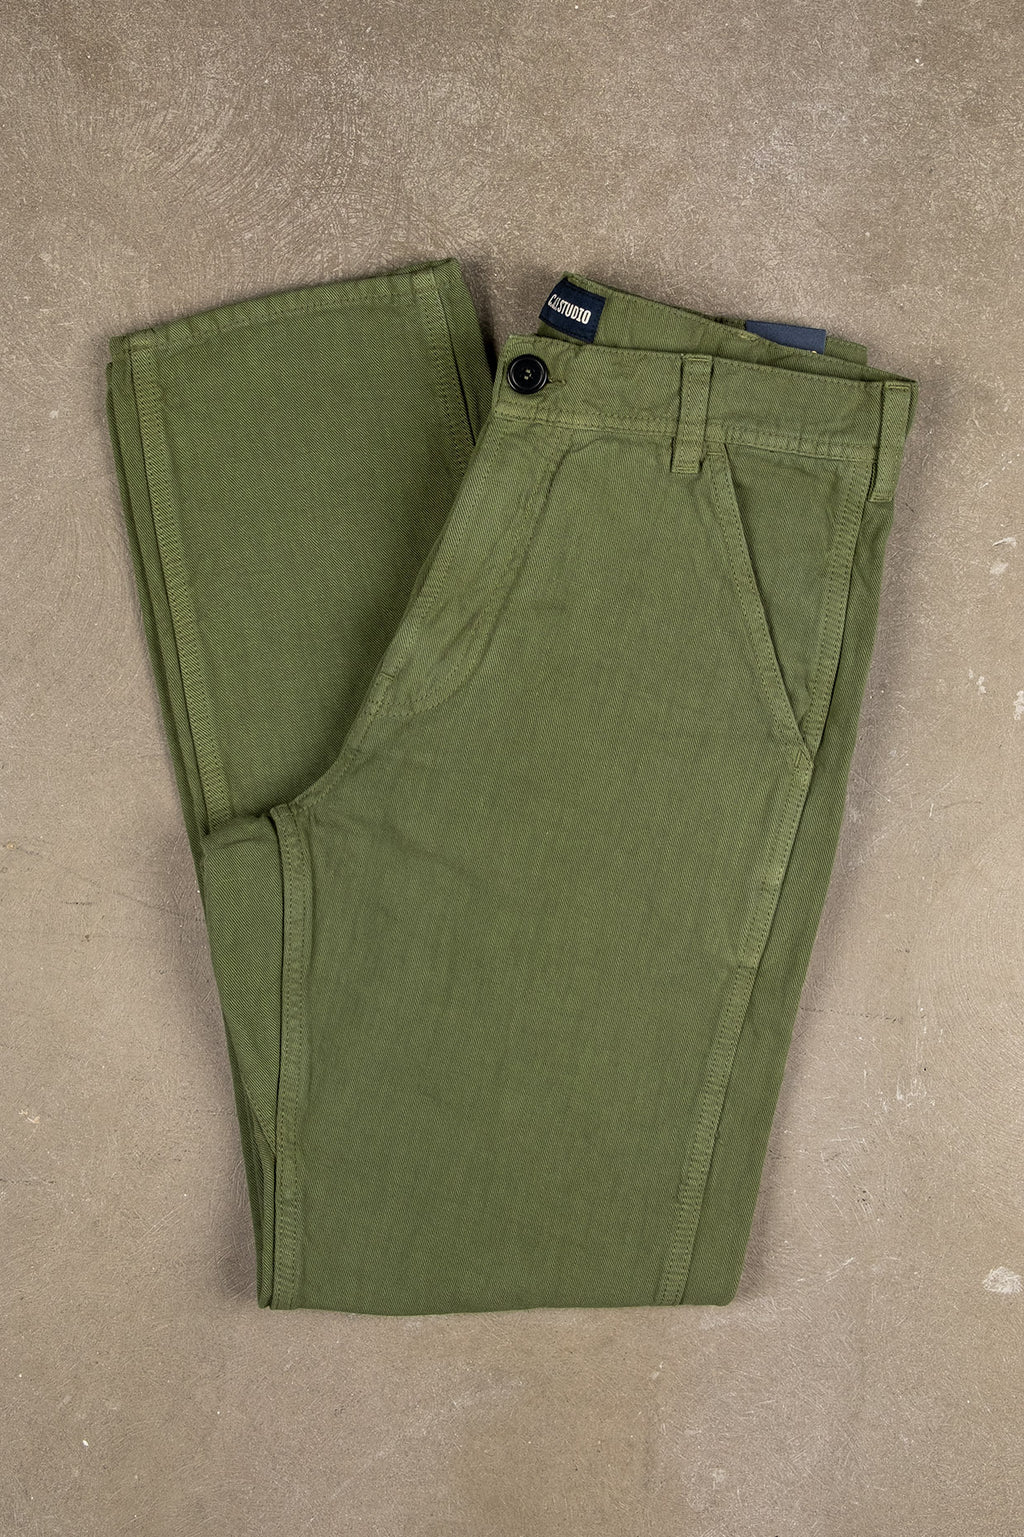 Labour Pant Cotton Linen Twill - Military